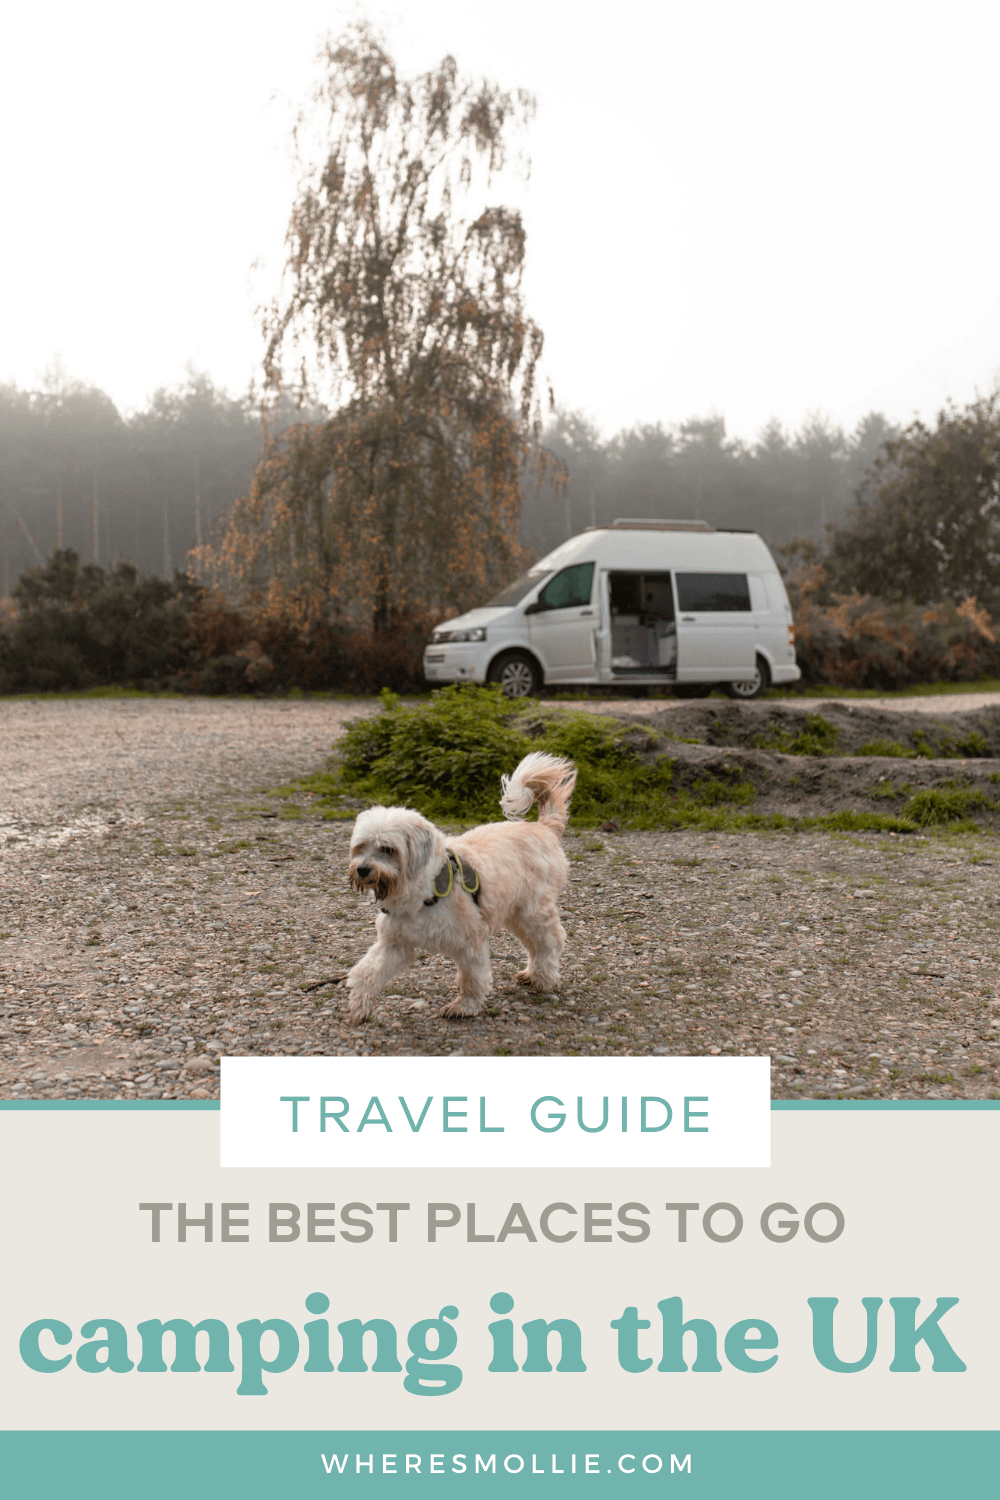 The best places to go camping in the UK